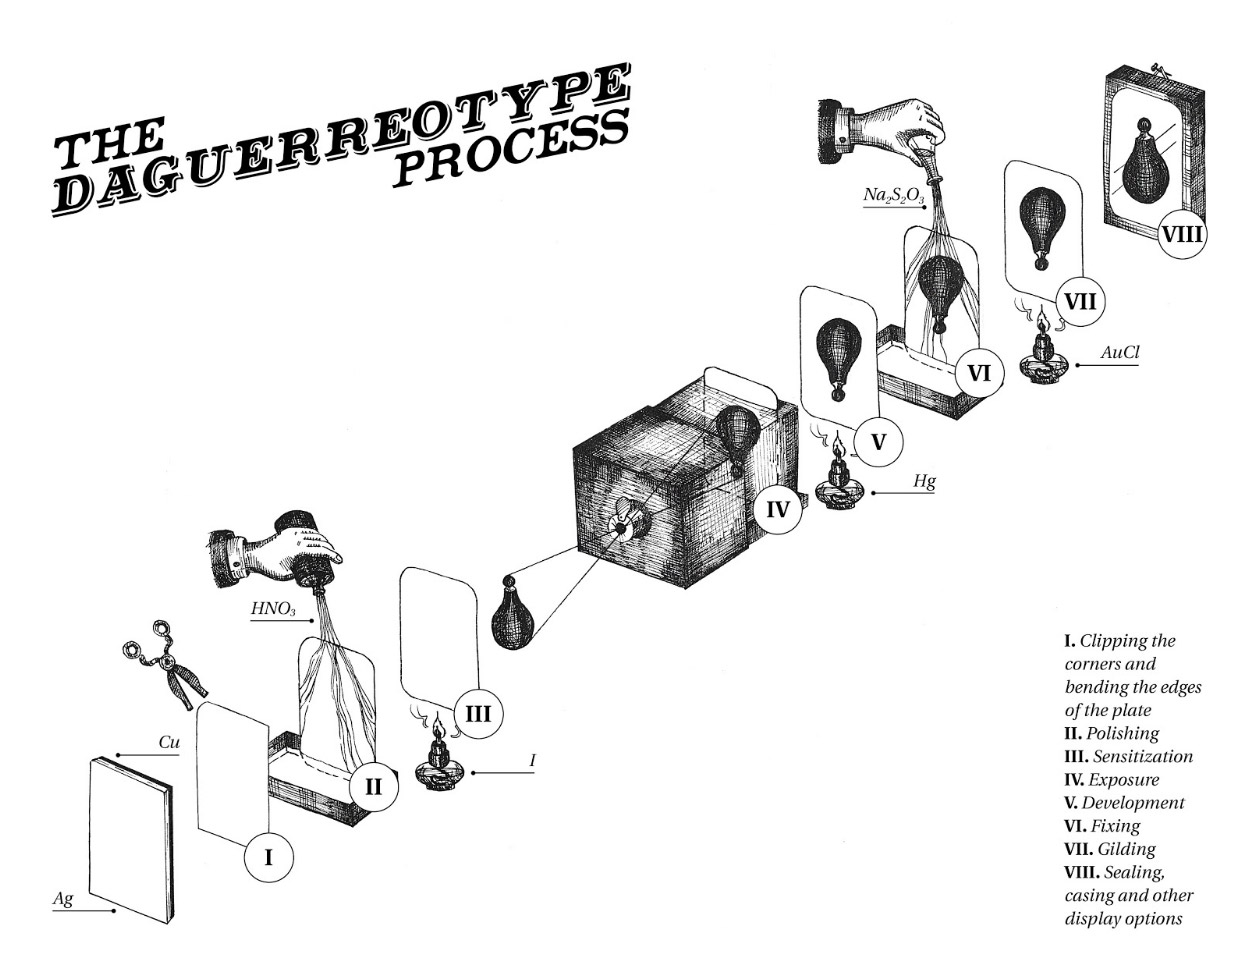 Exploded diagram of the daguerreotype process